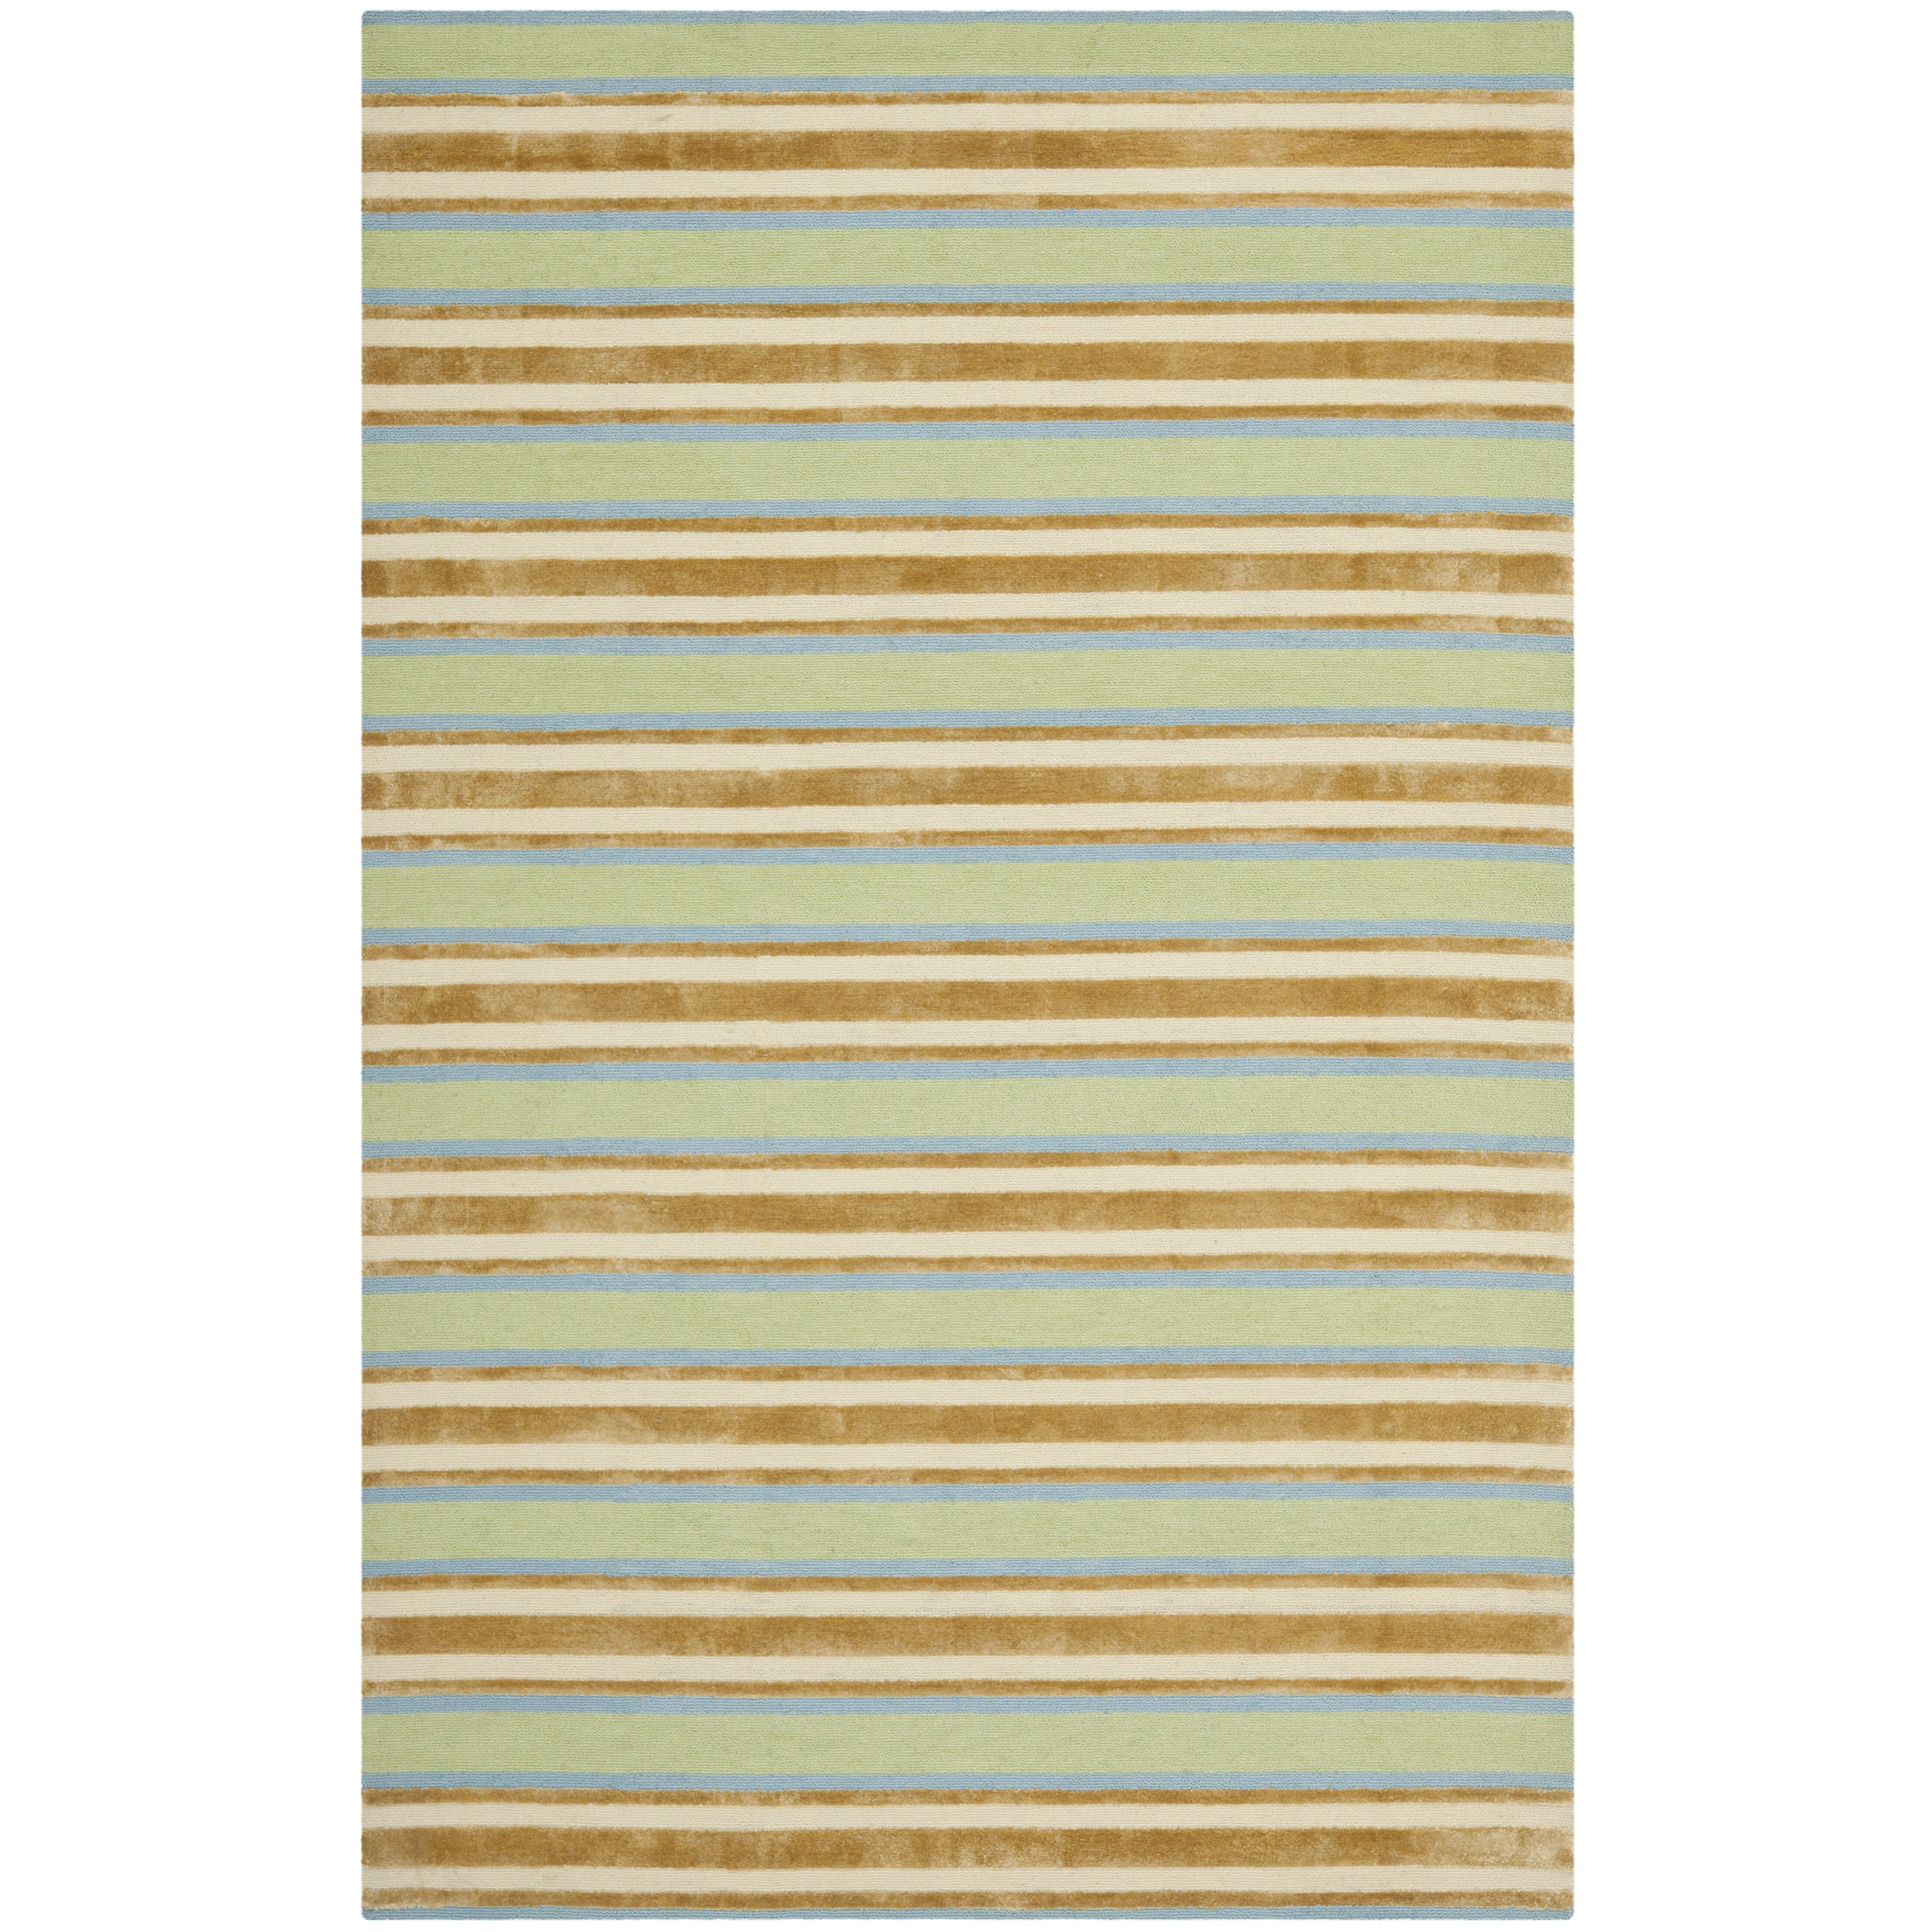 Isaac Mizrahi Orange Green Striped Rug Allmodern